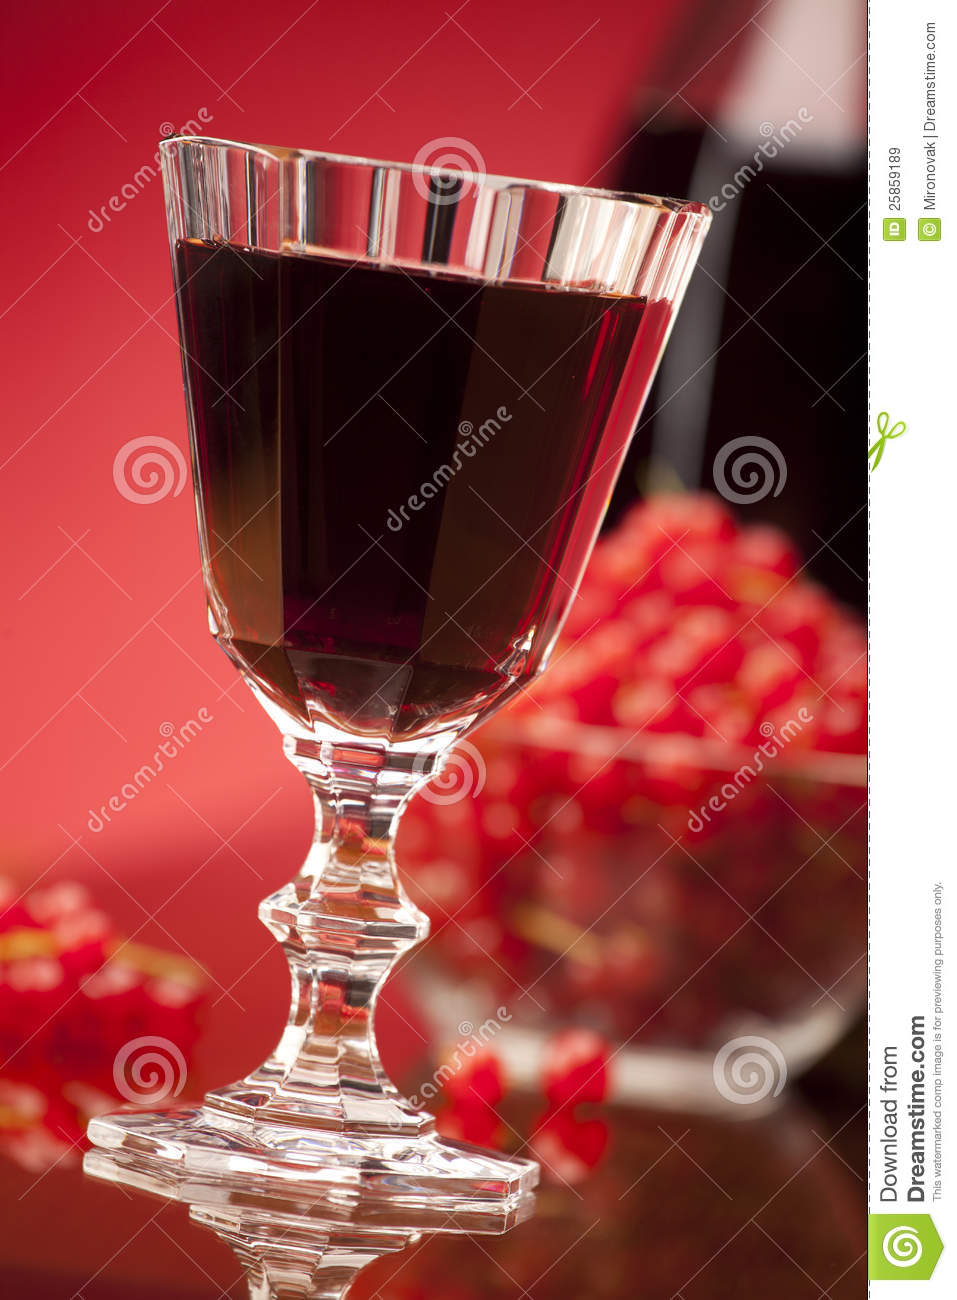 Glass of red fruit wine